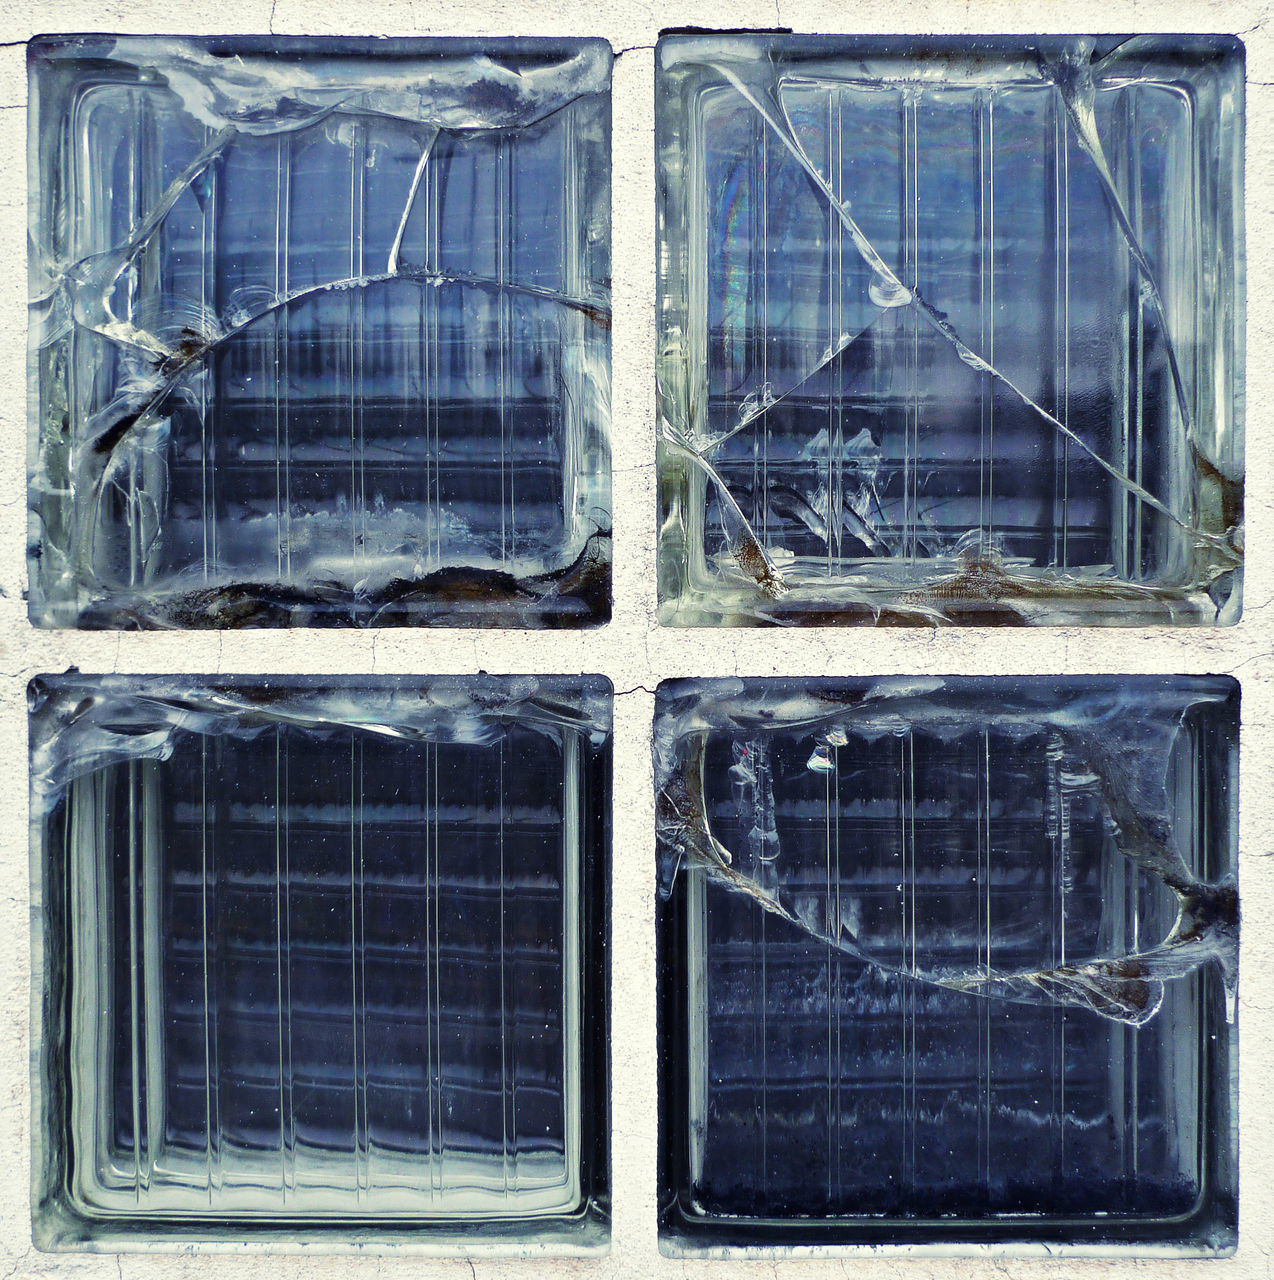 window, repairing, damaged, no people, built structure, architecture, day, close-up, technology, outdoors, multiple image